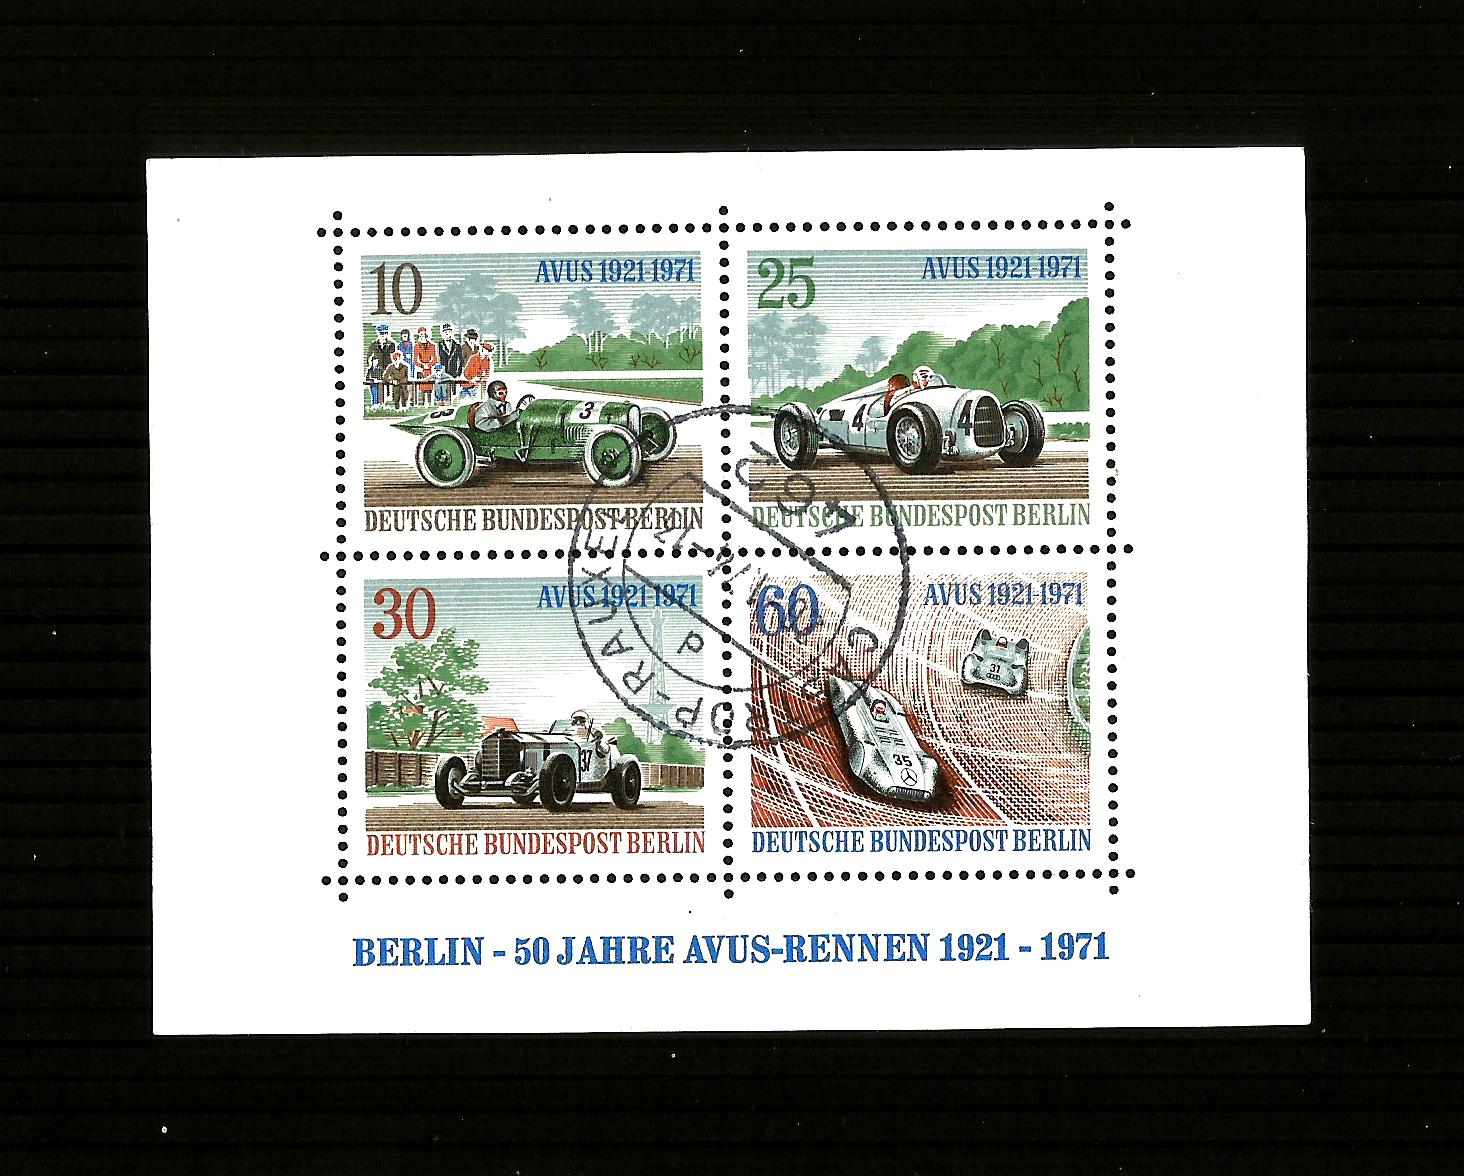 BERLIN GERMANY 1971 MSB395 50th Avus Motor-racing Mini Sheet  us